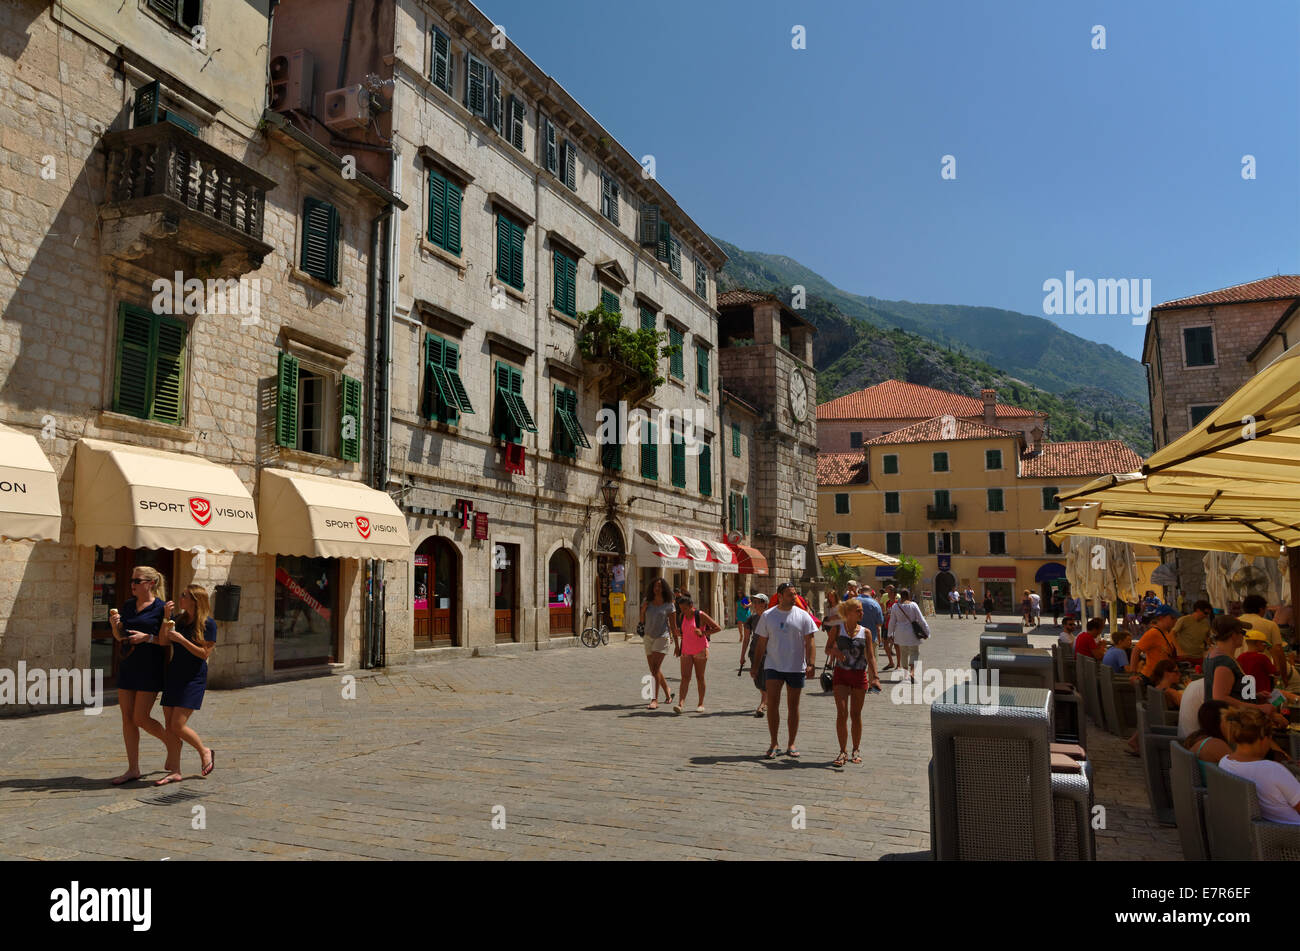 Square of Arms, Old town of Kotor, Montenegro. - Stock Image